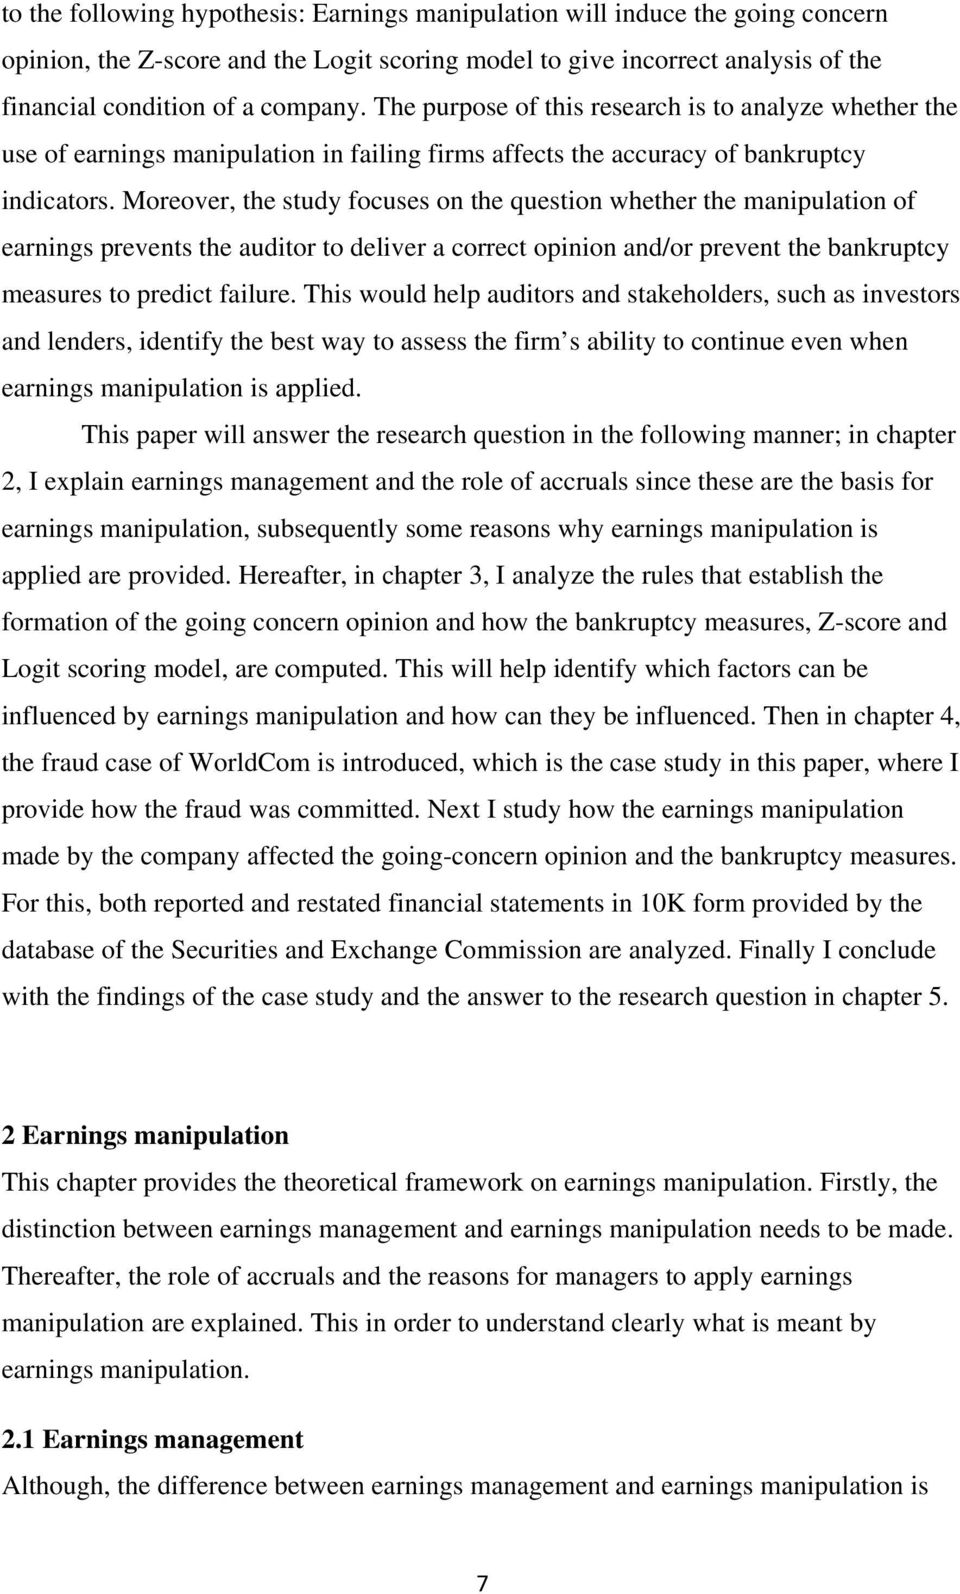 Earnings manipulation and bankruptcy: WorldCom - PDF